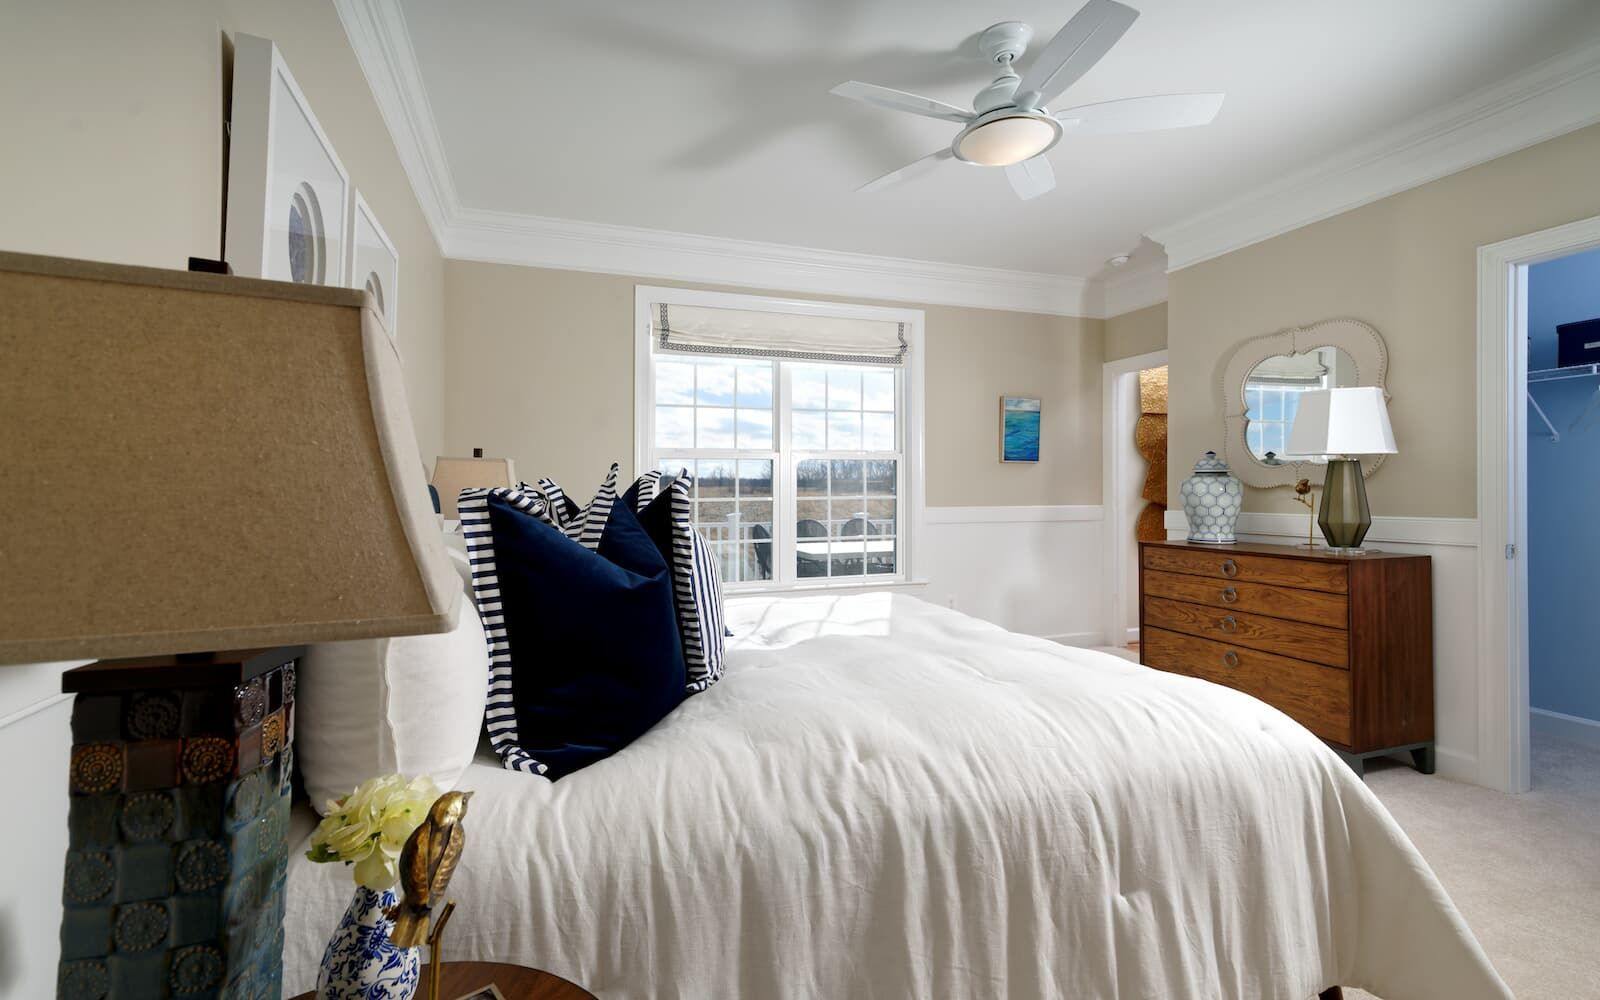 Bedroom featured in the Pendleton By Brookfield Residential in Washington, VA